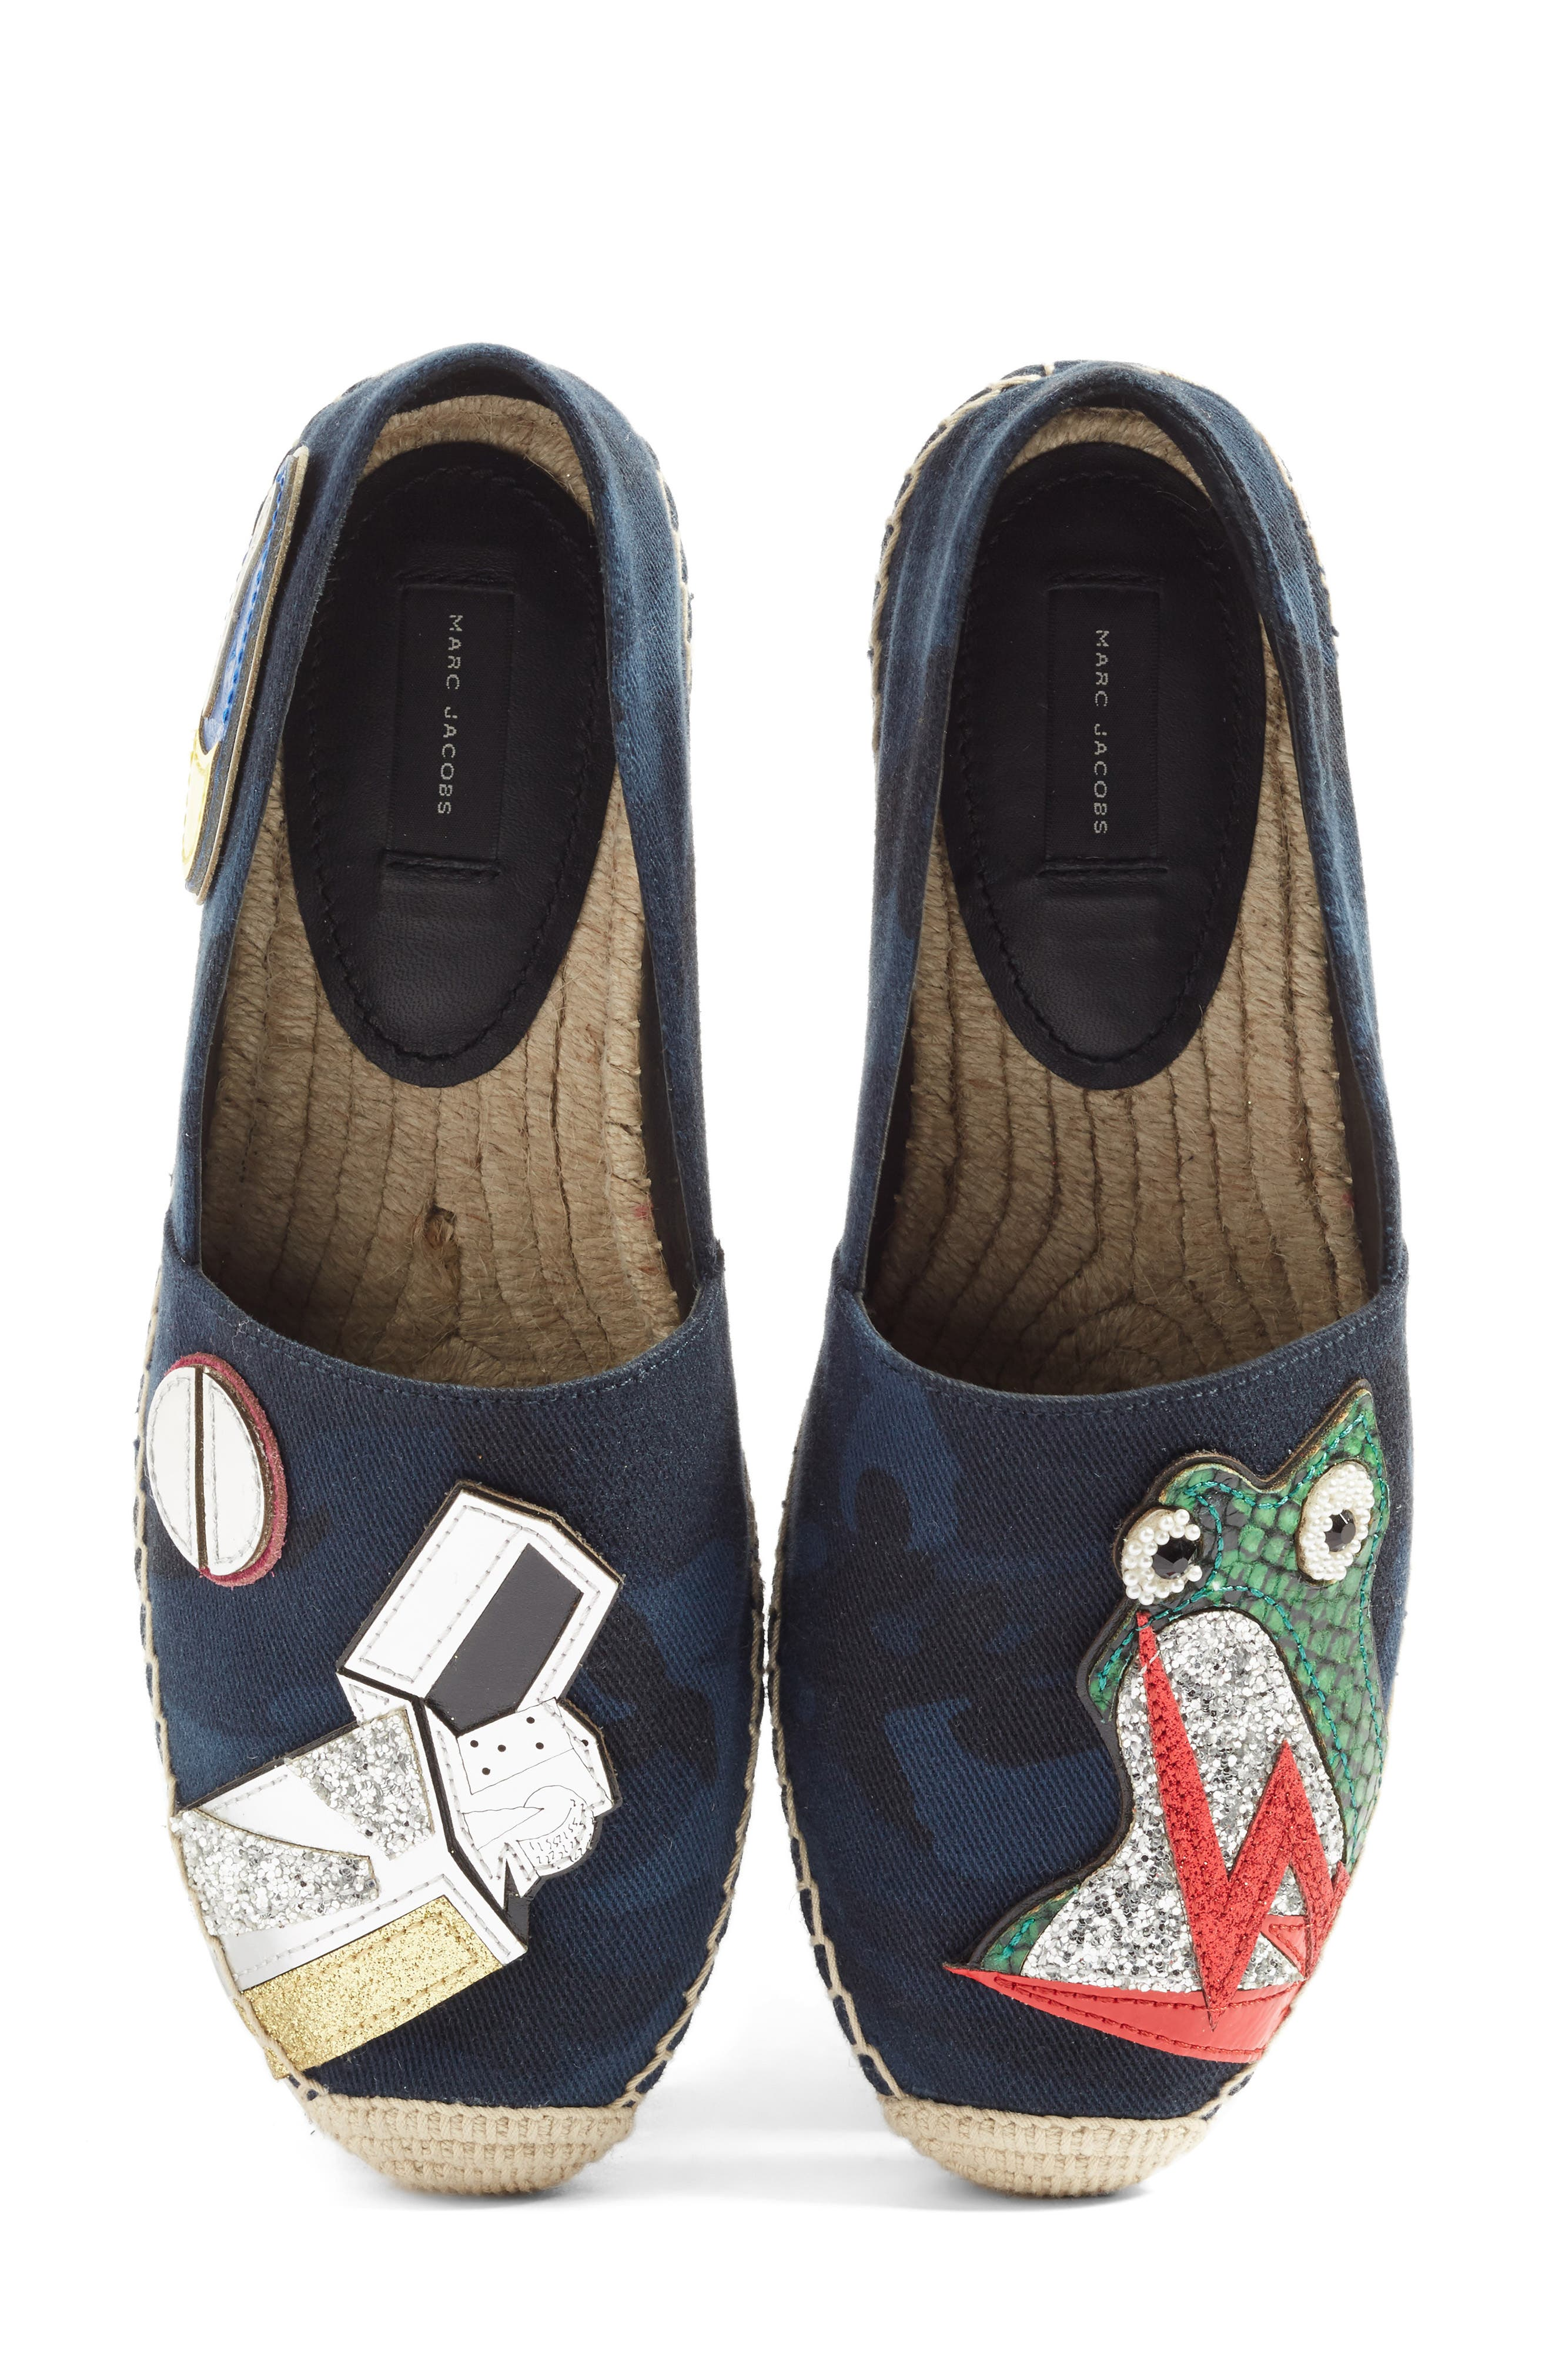 MARC JACOBS Sienna Frog Espadrille Flat